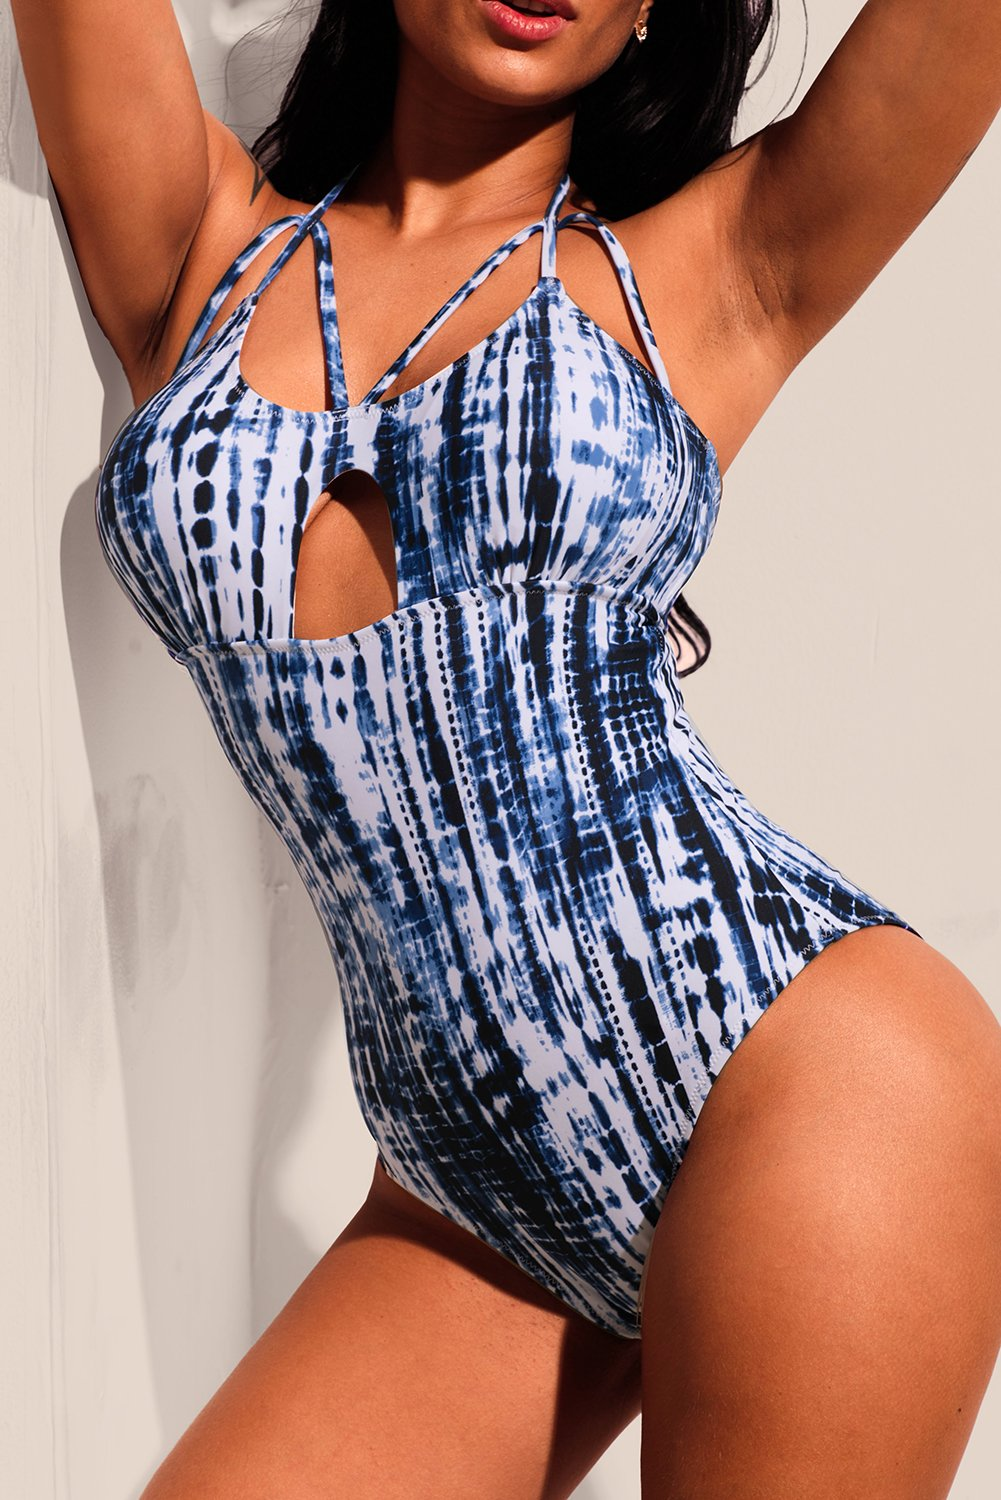 Randomness Blue Tie Dye Print Caged One-piece Swimwear